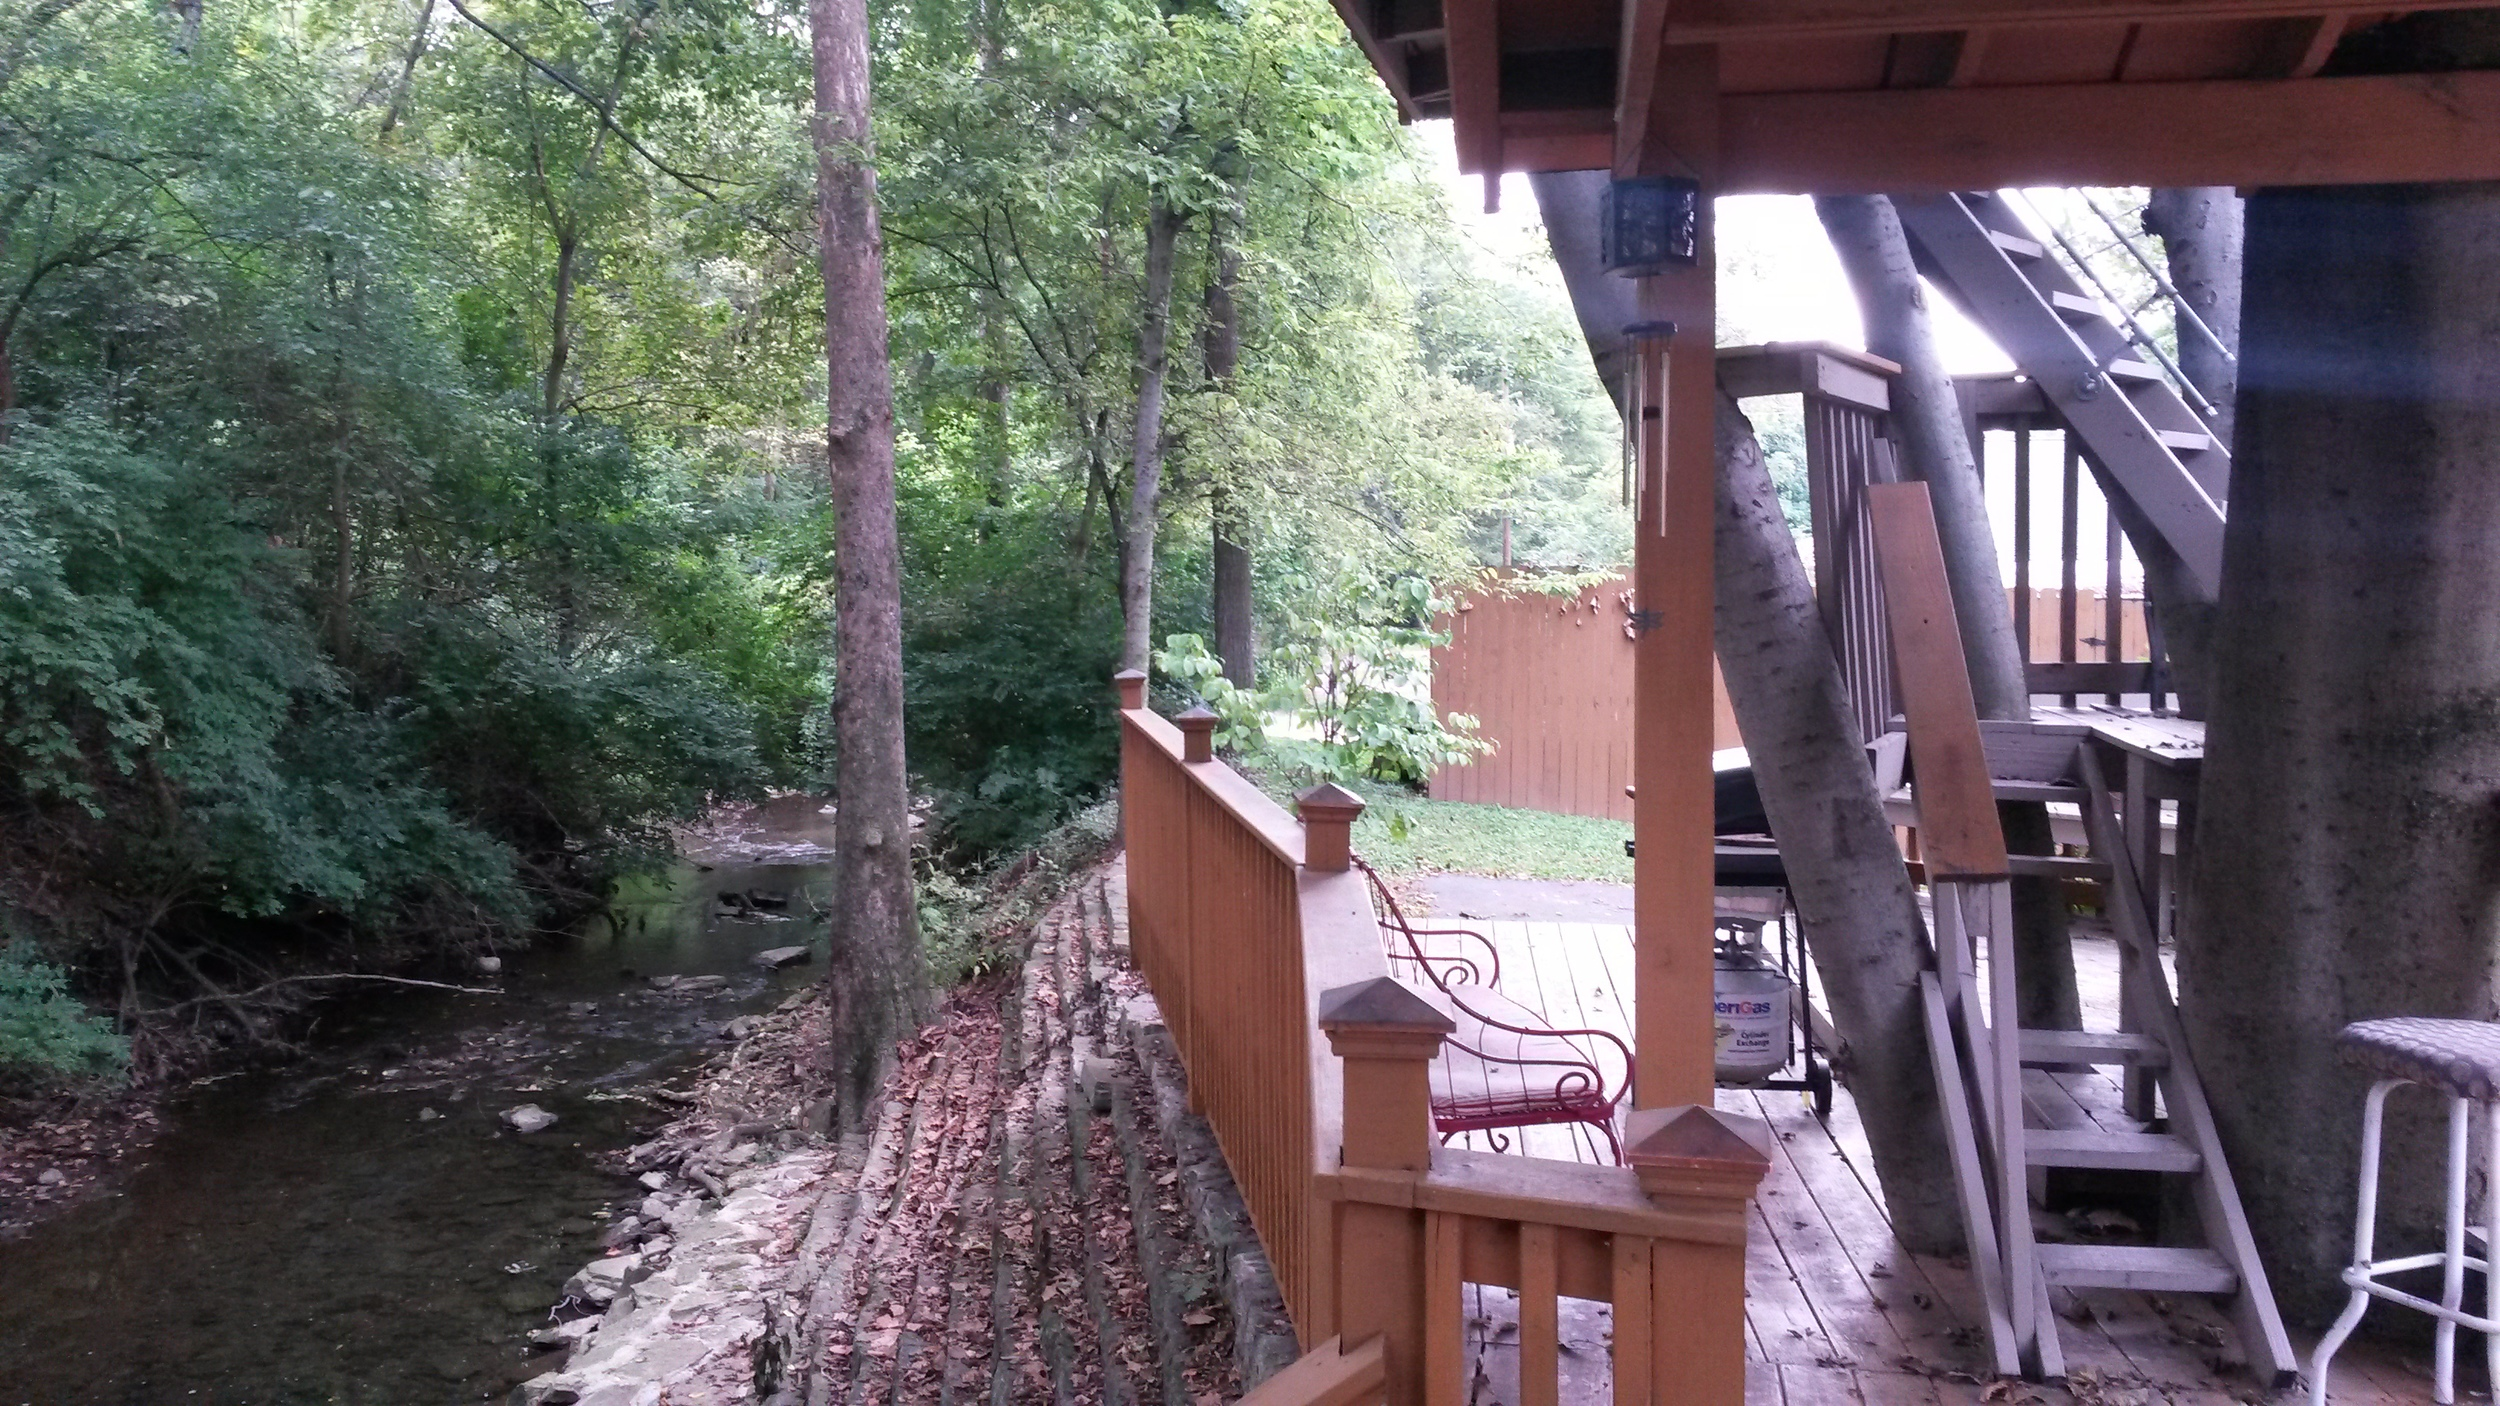 The stream at the back of the tree house.